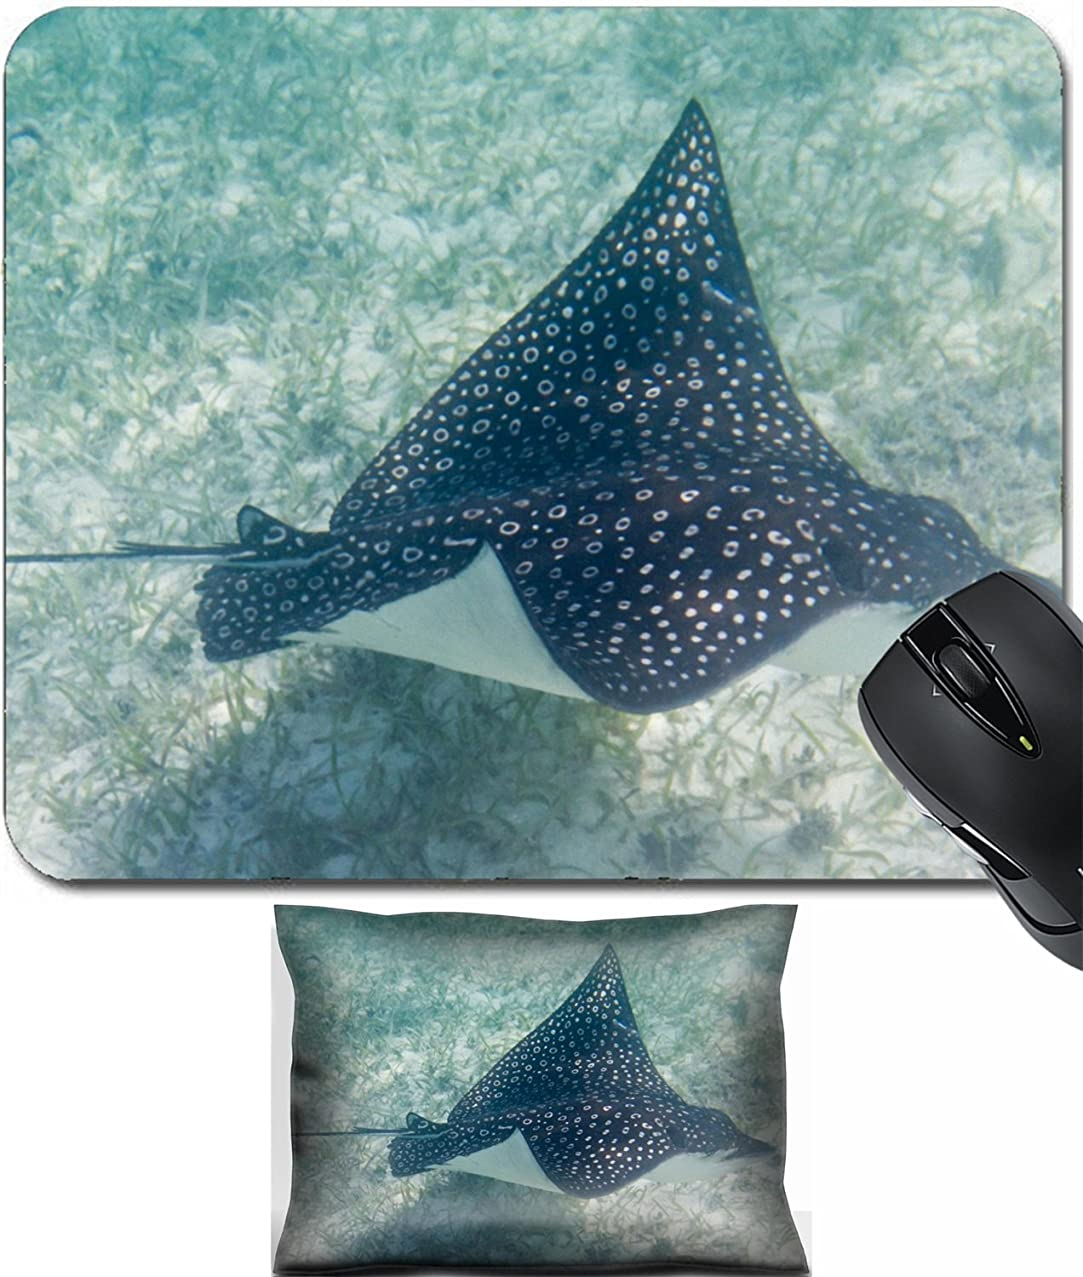 MSD Mouse Wrist Rest and Small Mousepad Set, 2pc Wrist Support design 24593130 underwater close up of a sting ray the coast Belize